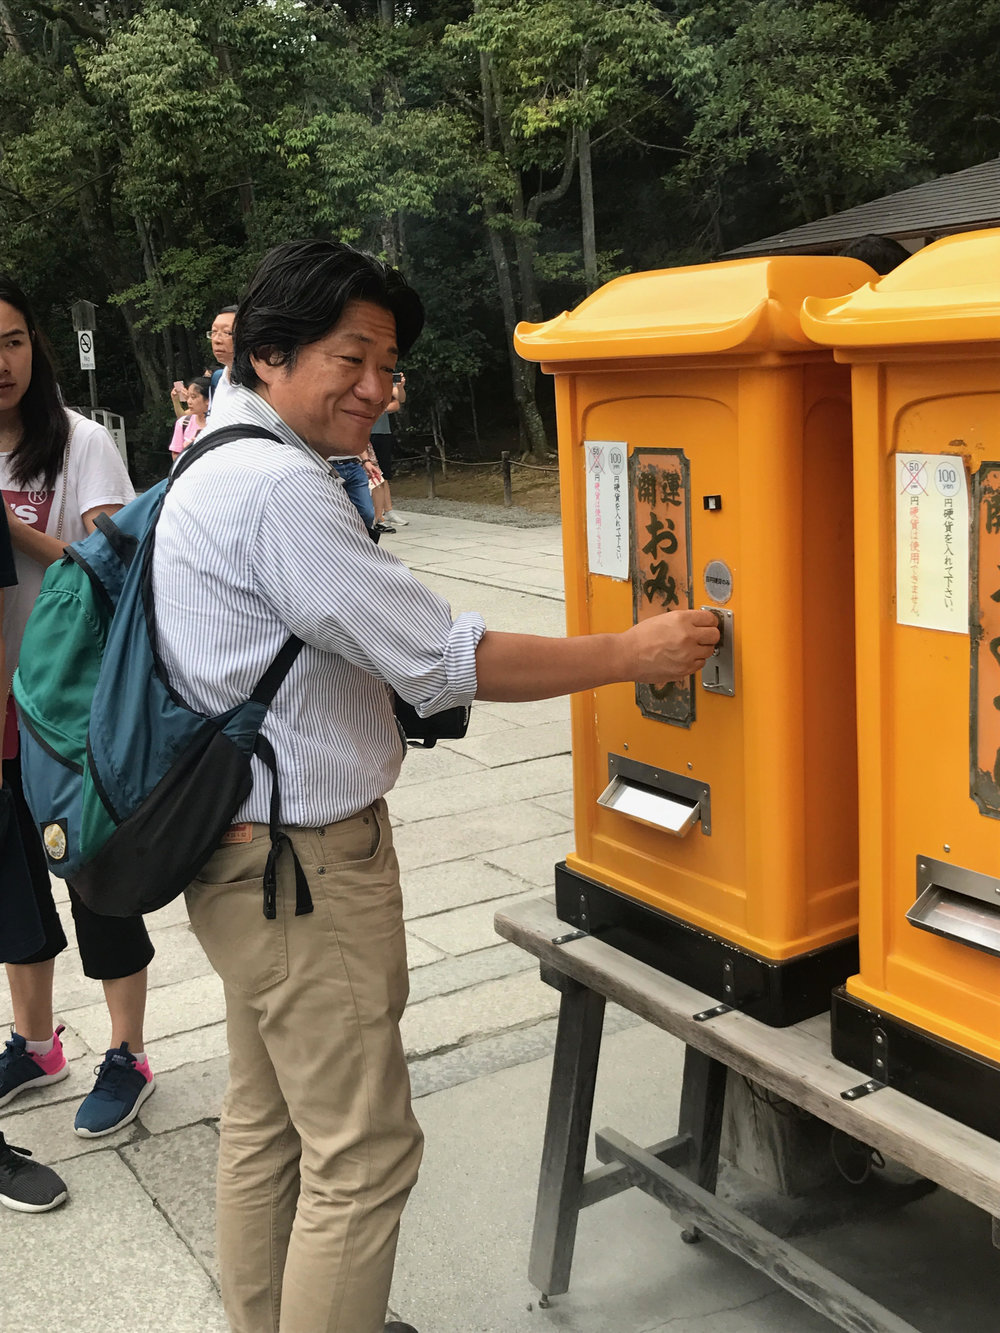 Shiga-san trying his luck with a yellow fortune-telling machine